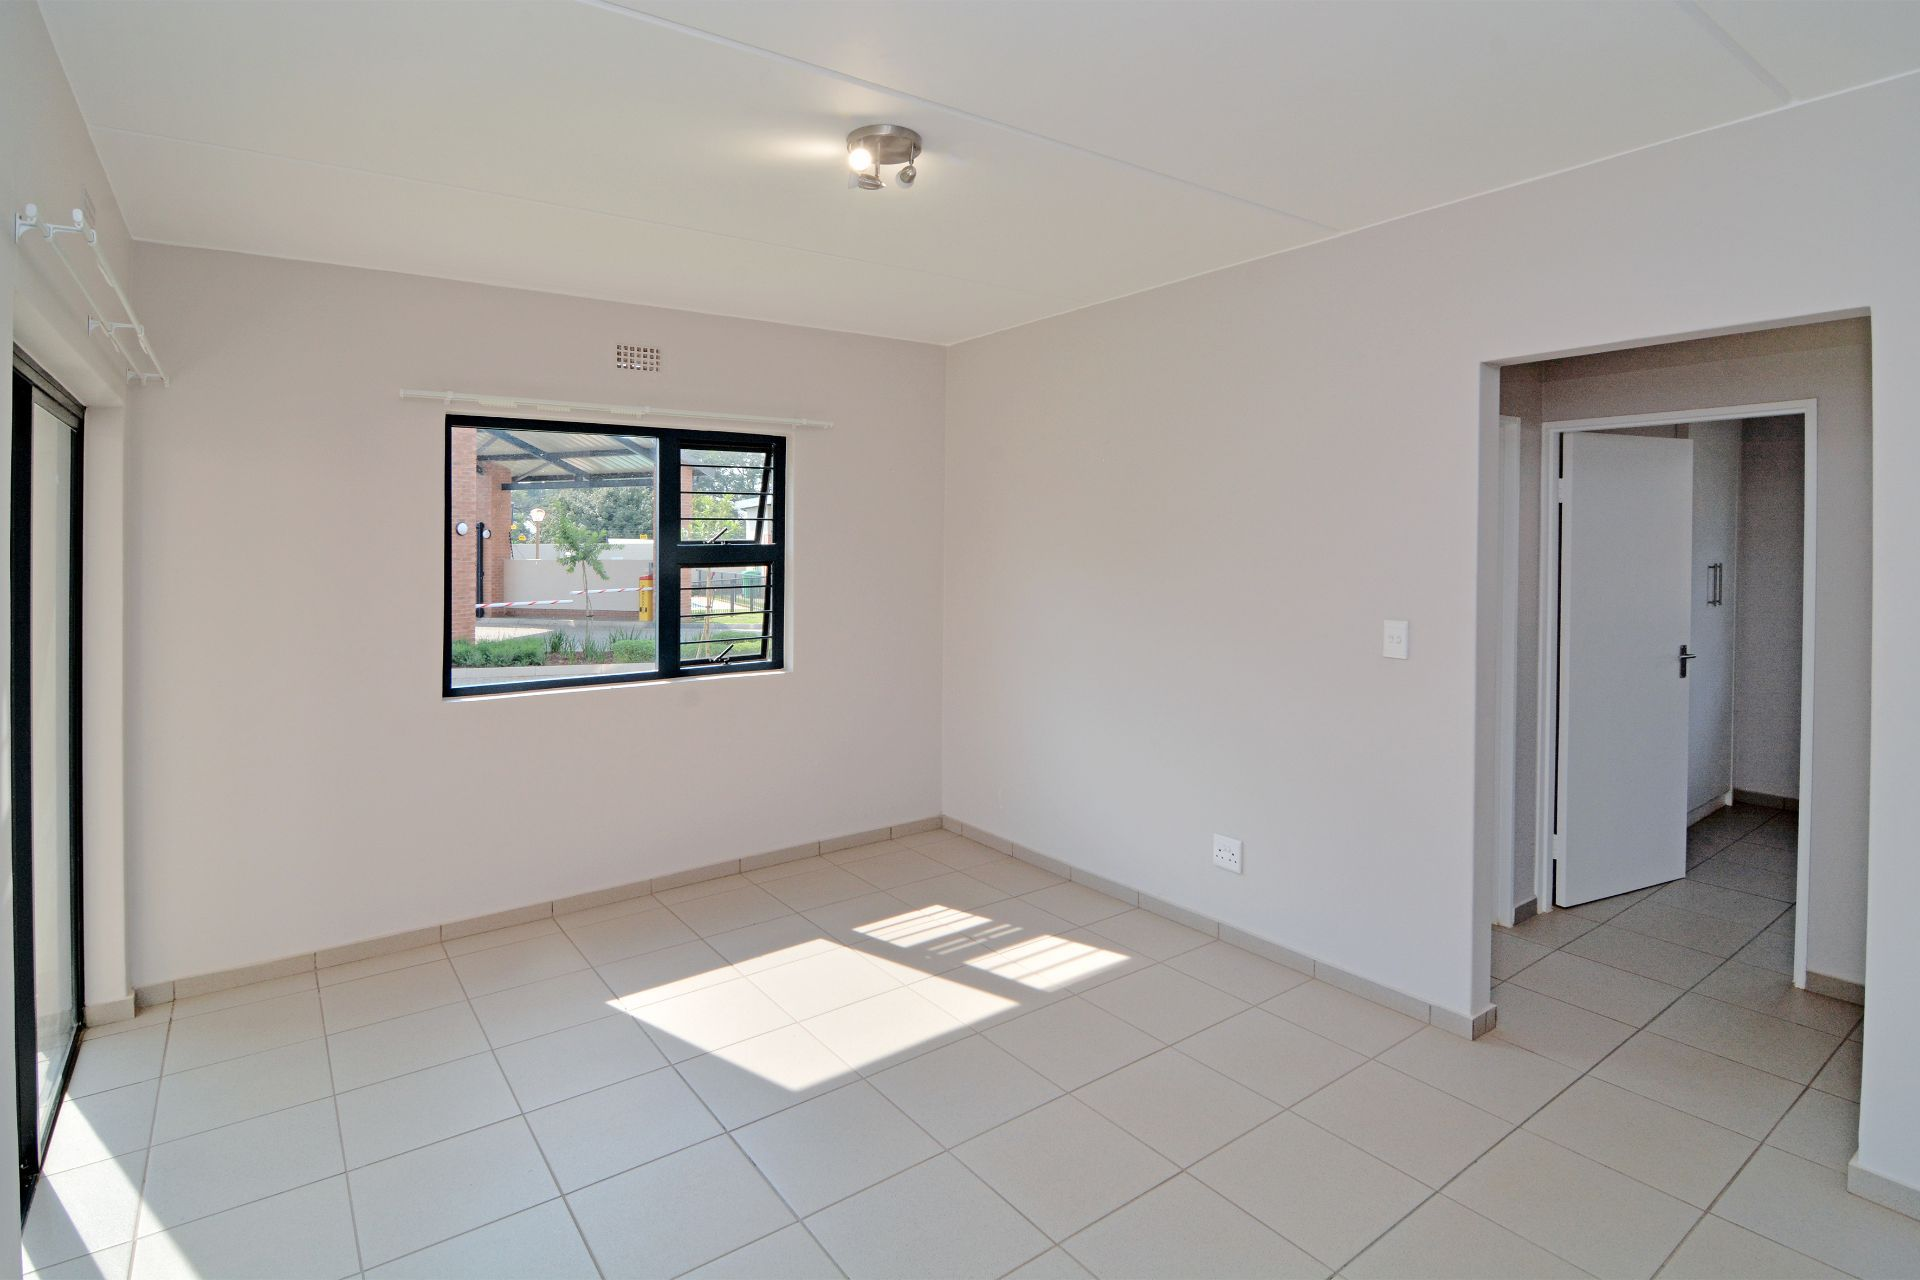 Apartment in Ravenswood - candelwood cres-1.jpg